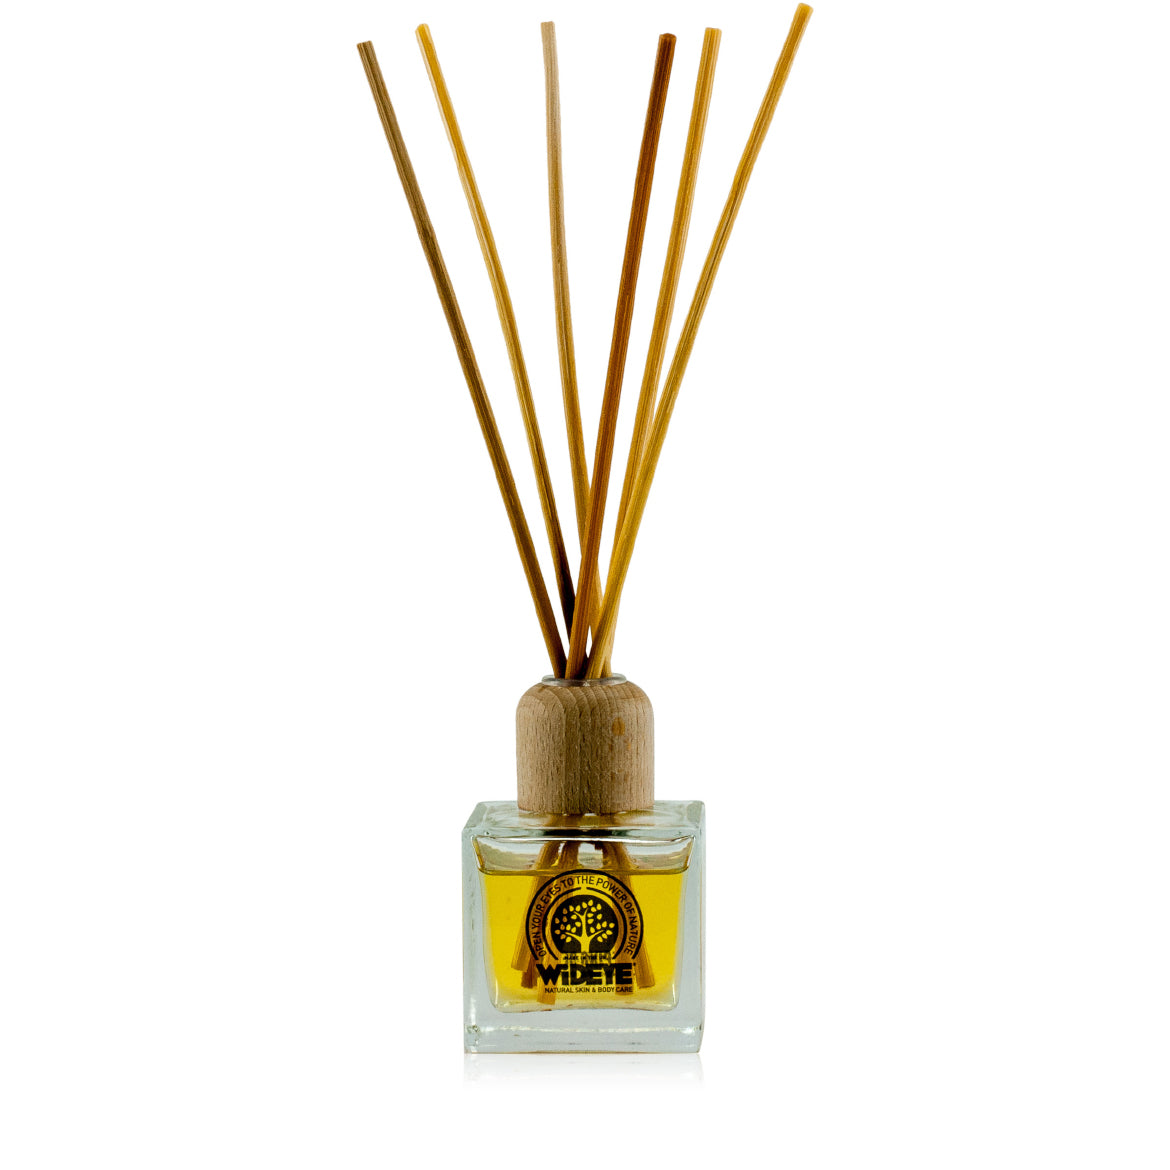 Natural vegan aromatherapy Sleeping Beauty reed diffuser in glass jar with natural reeds, handmade by WiDEYE in Rye.